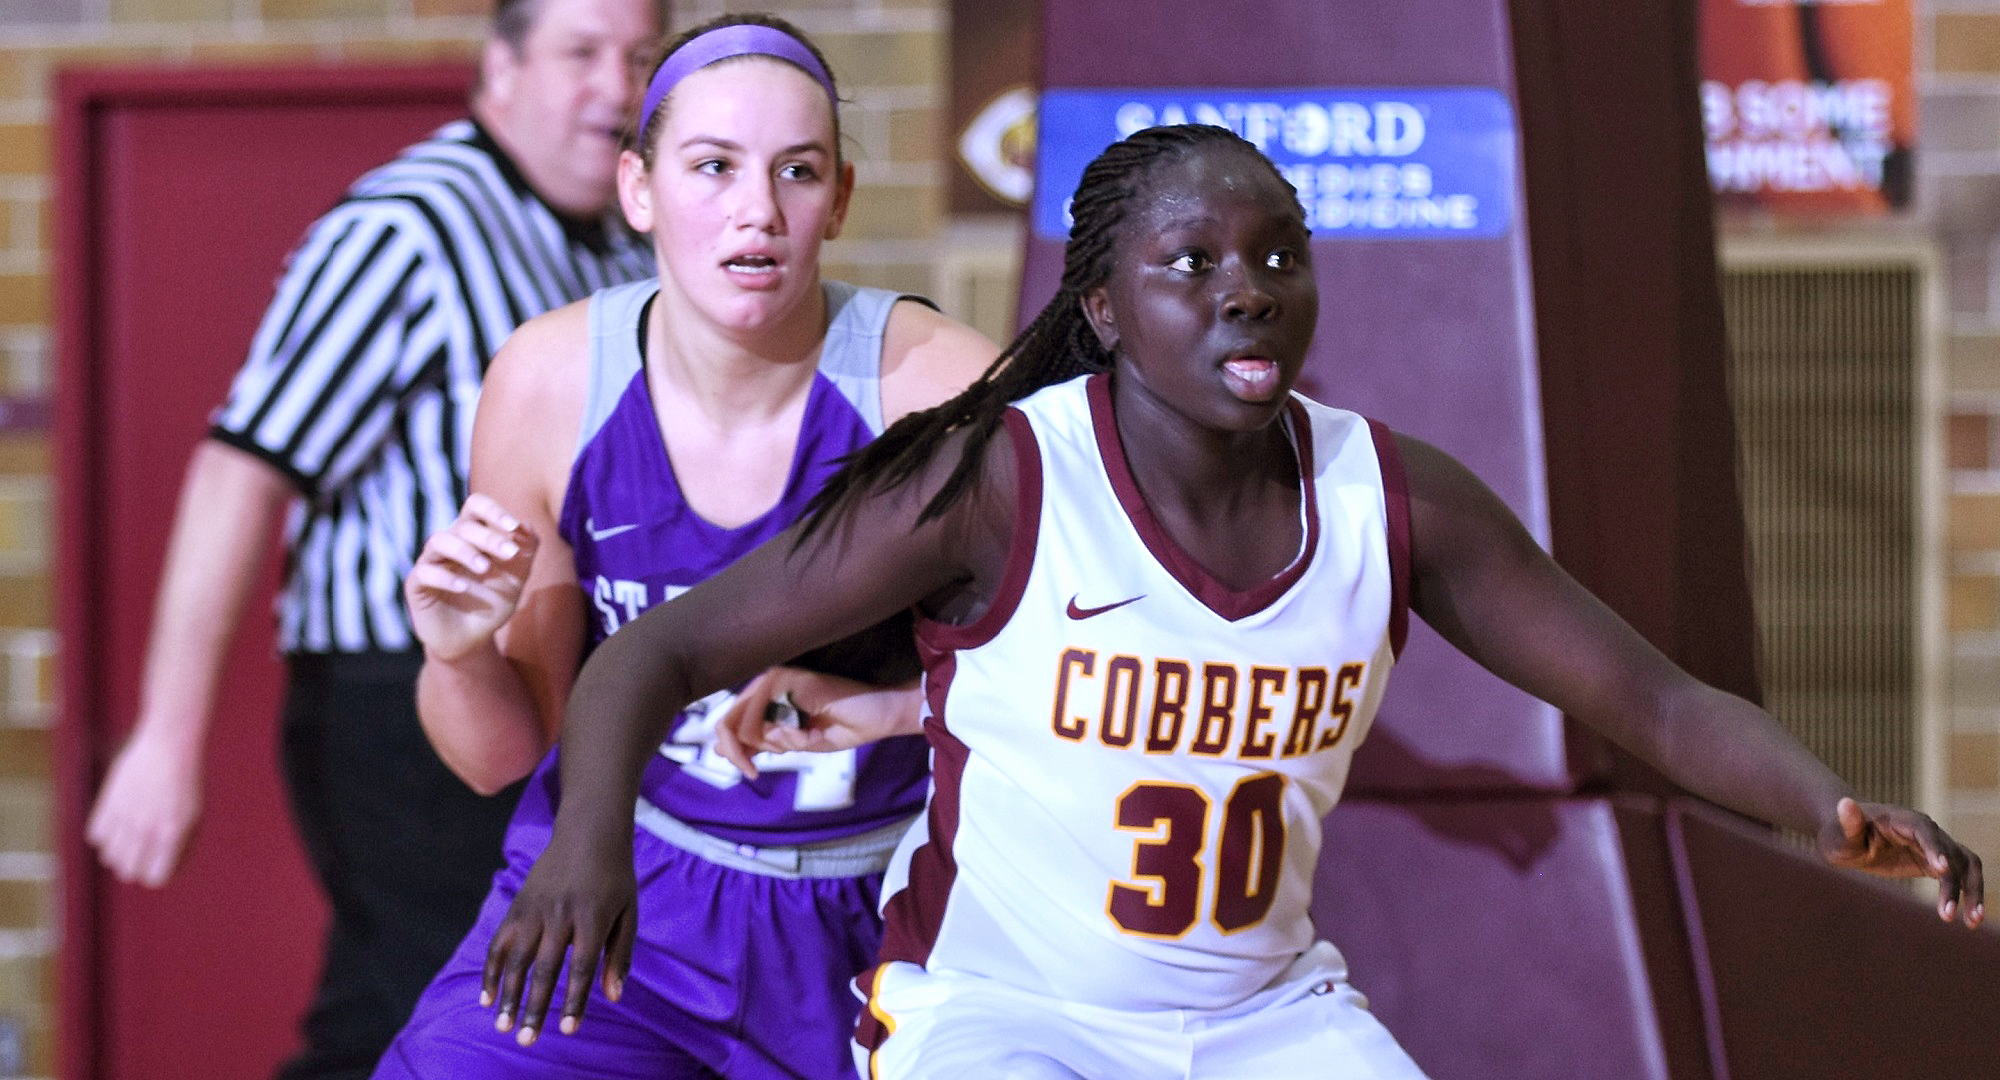 Sophomore Mary Sem posts up a St. Thomas player during the second half of the Cobbers' first game of 2020. Sem tied her career-high with 25 points.